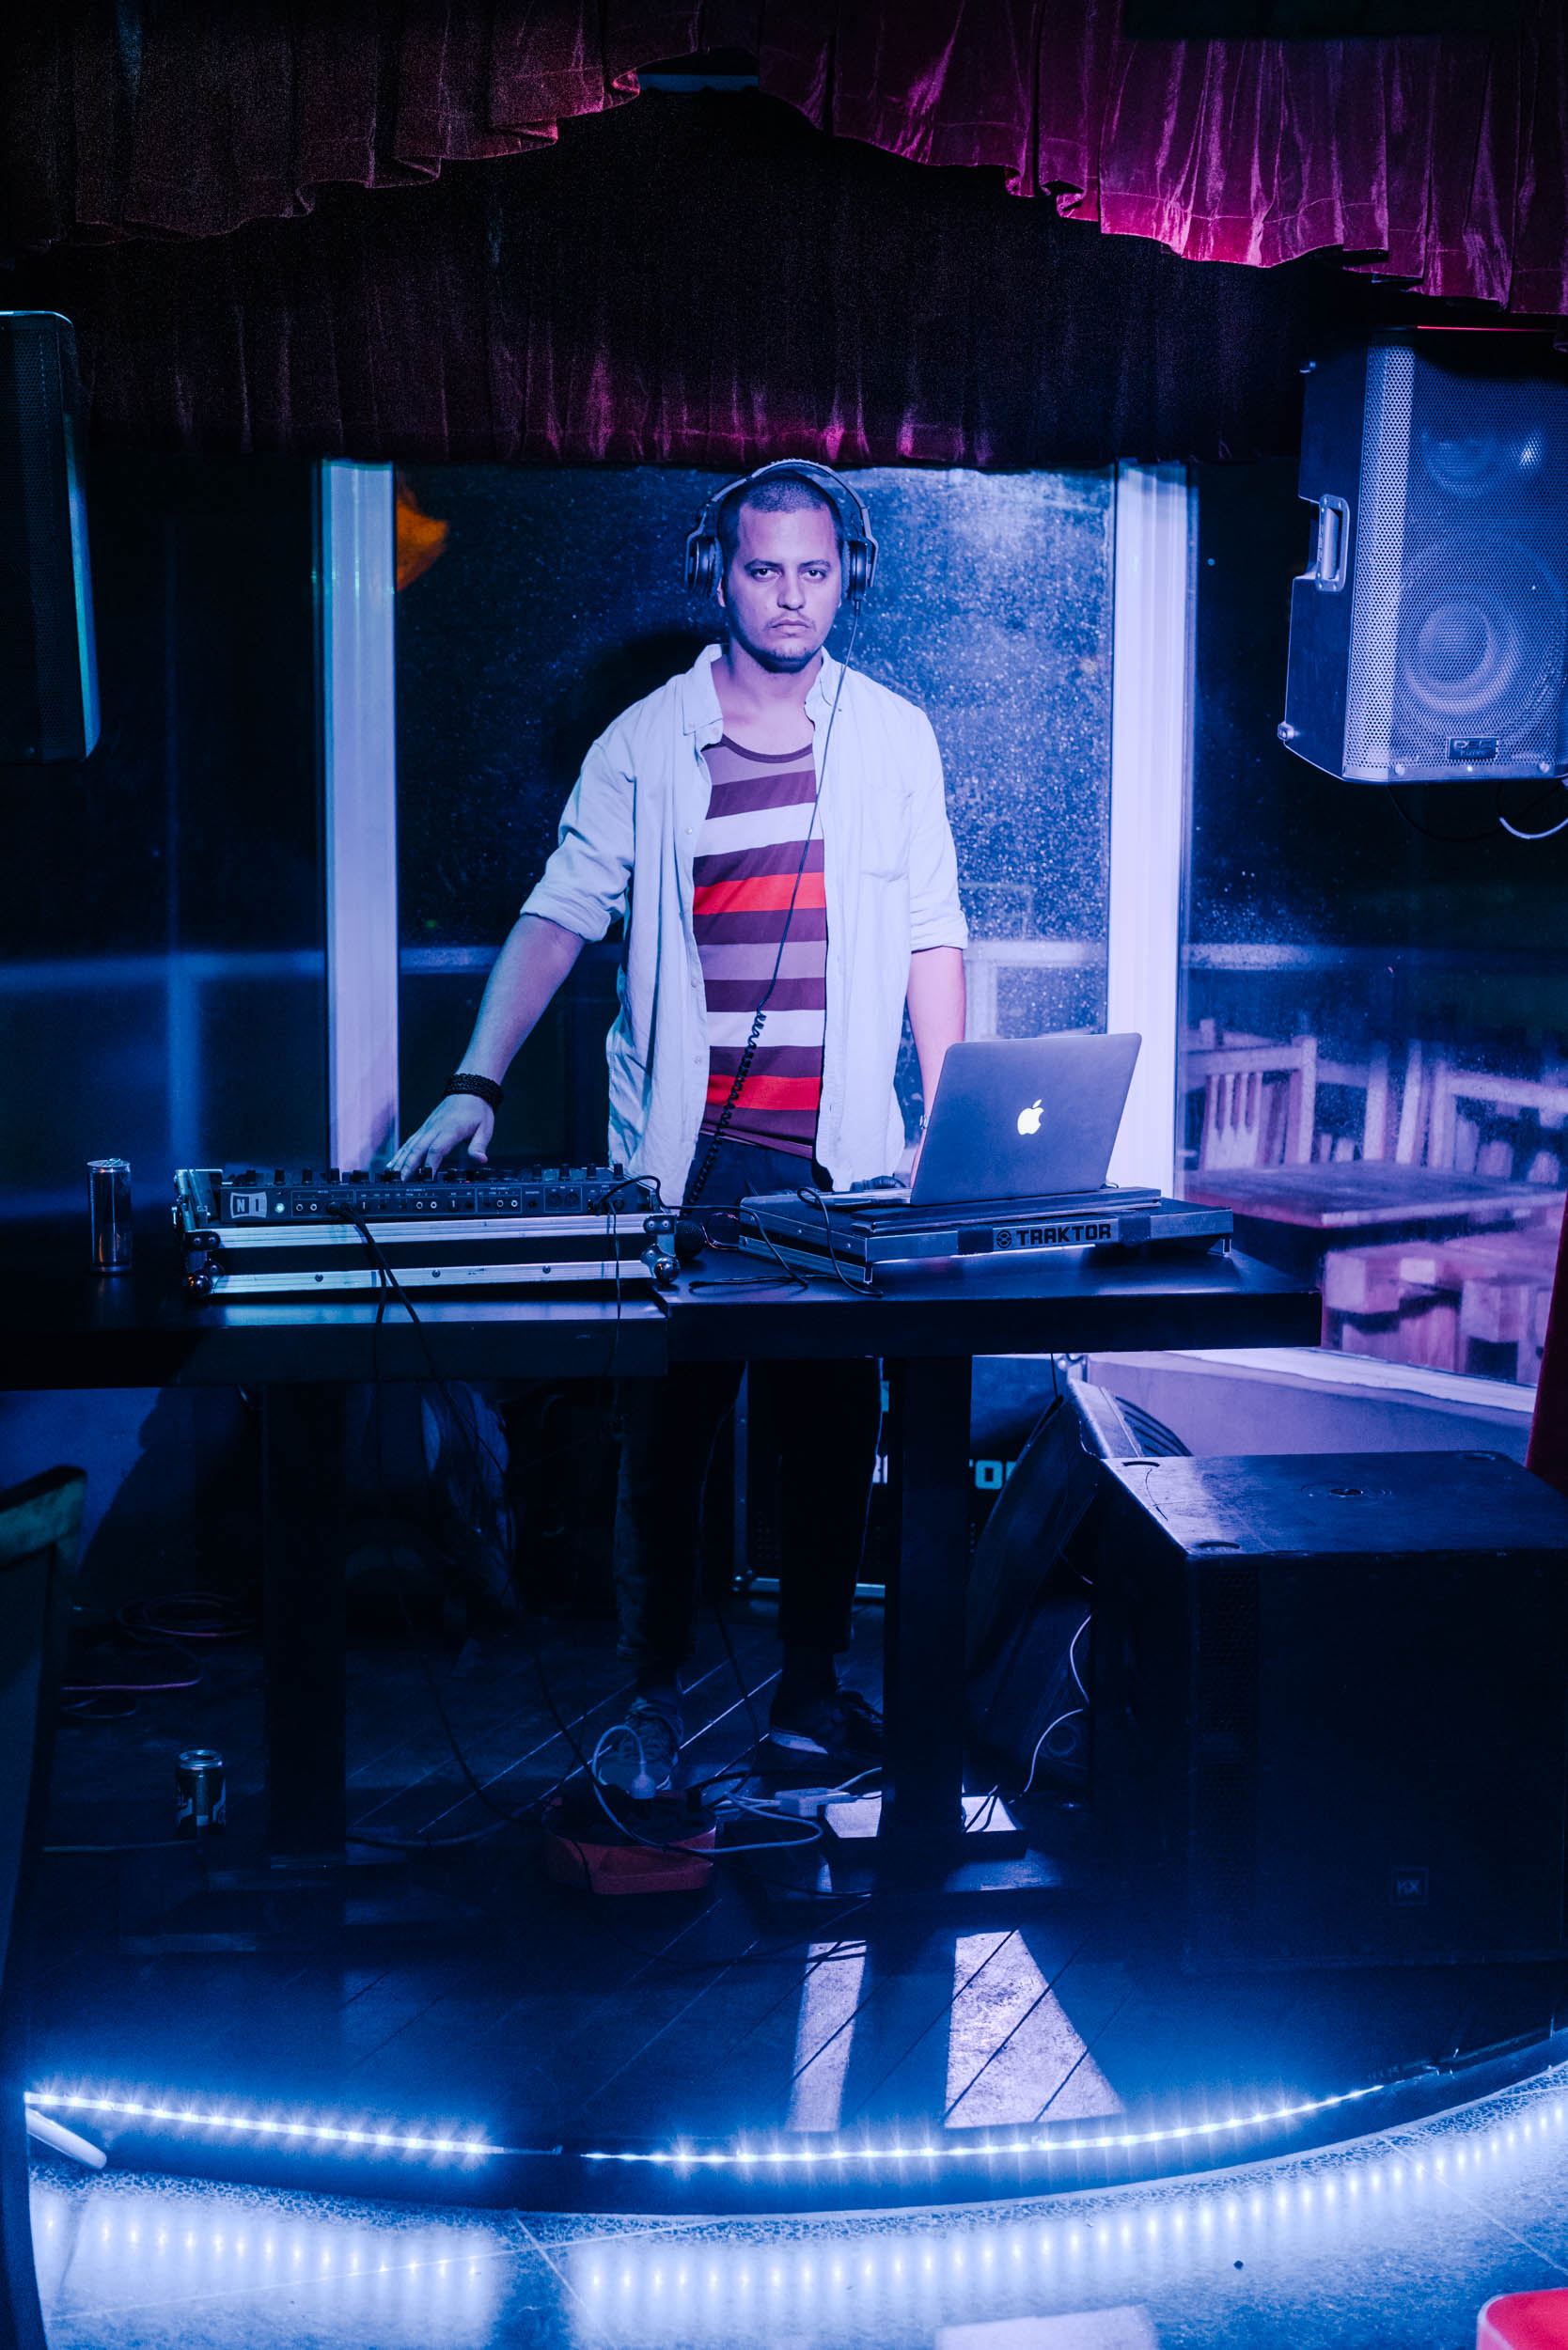 man standing at DJ booth inside dance club